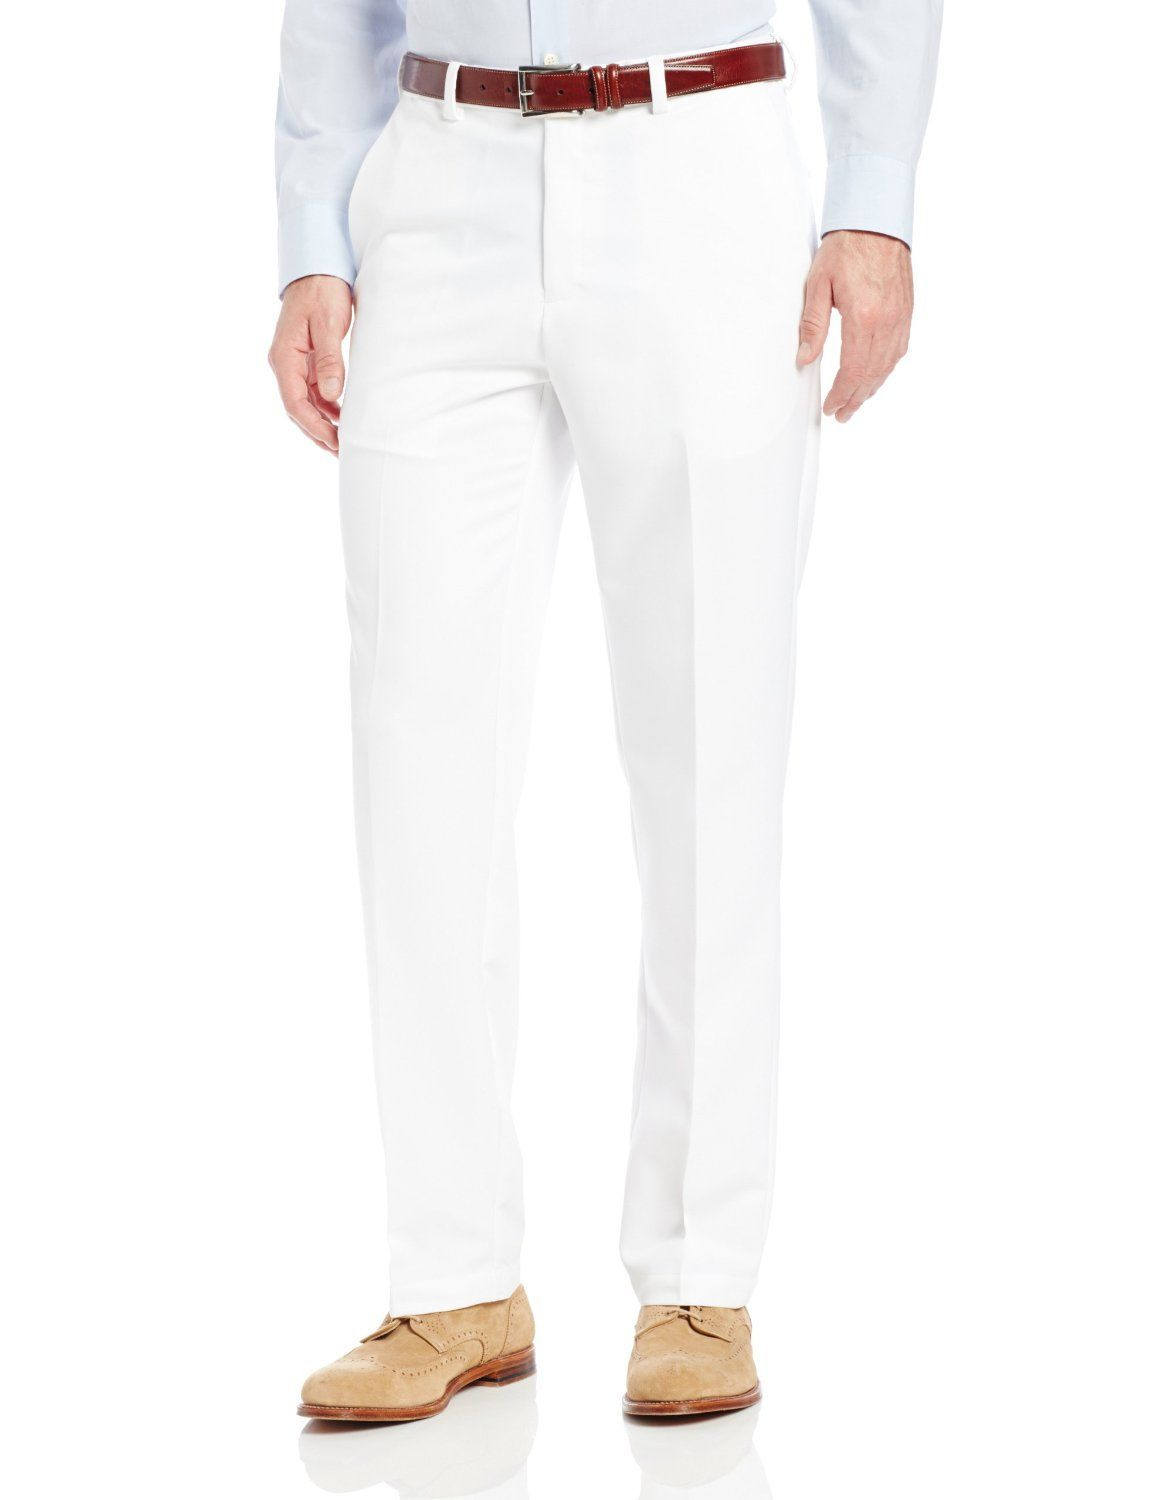 White Dress Pants | Gommap Blog